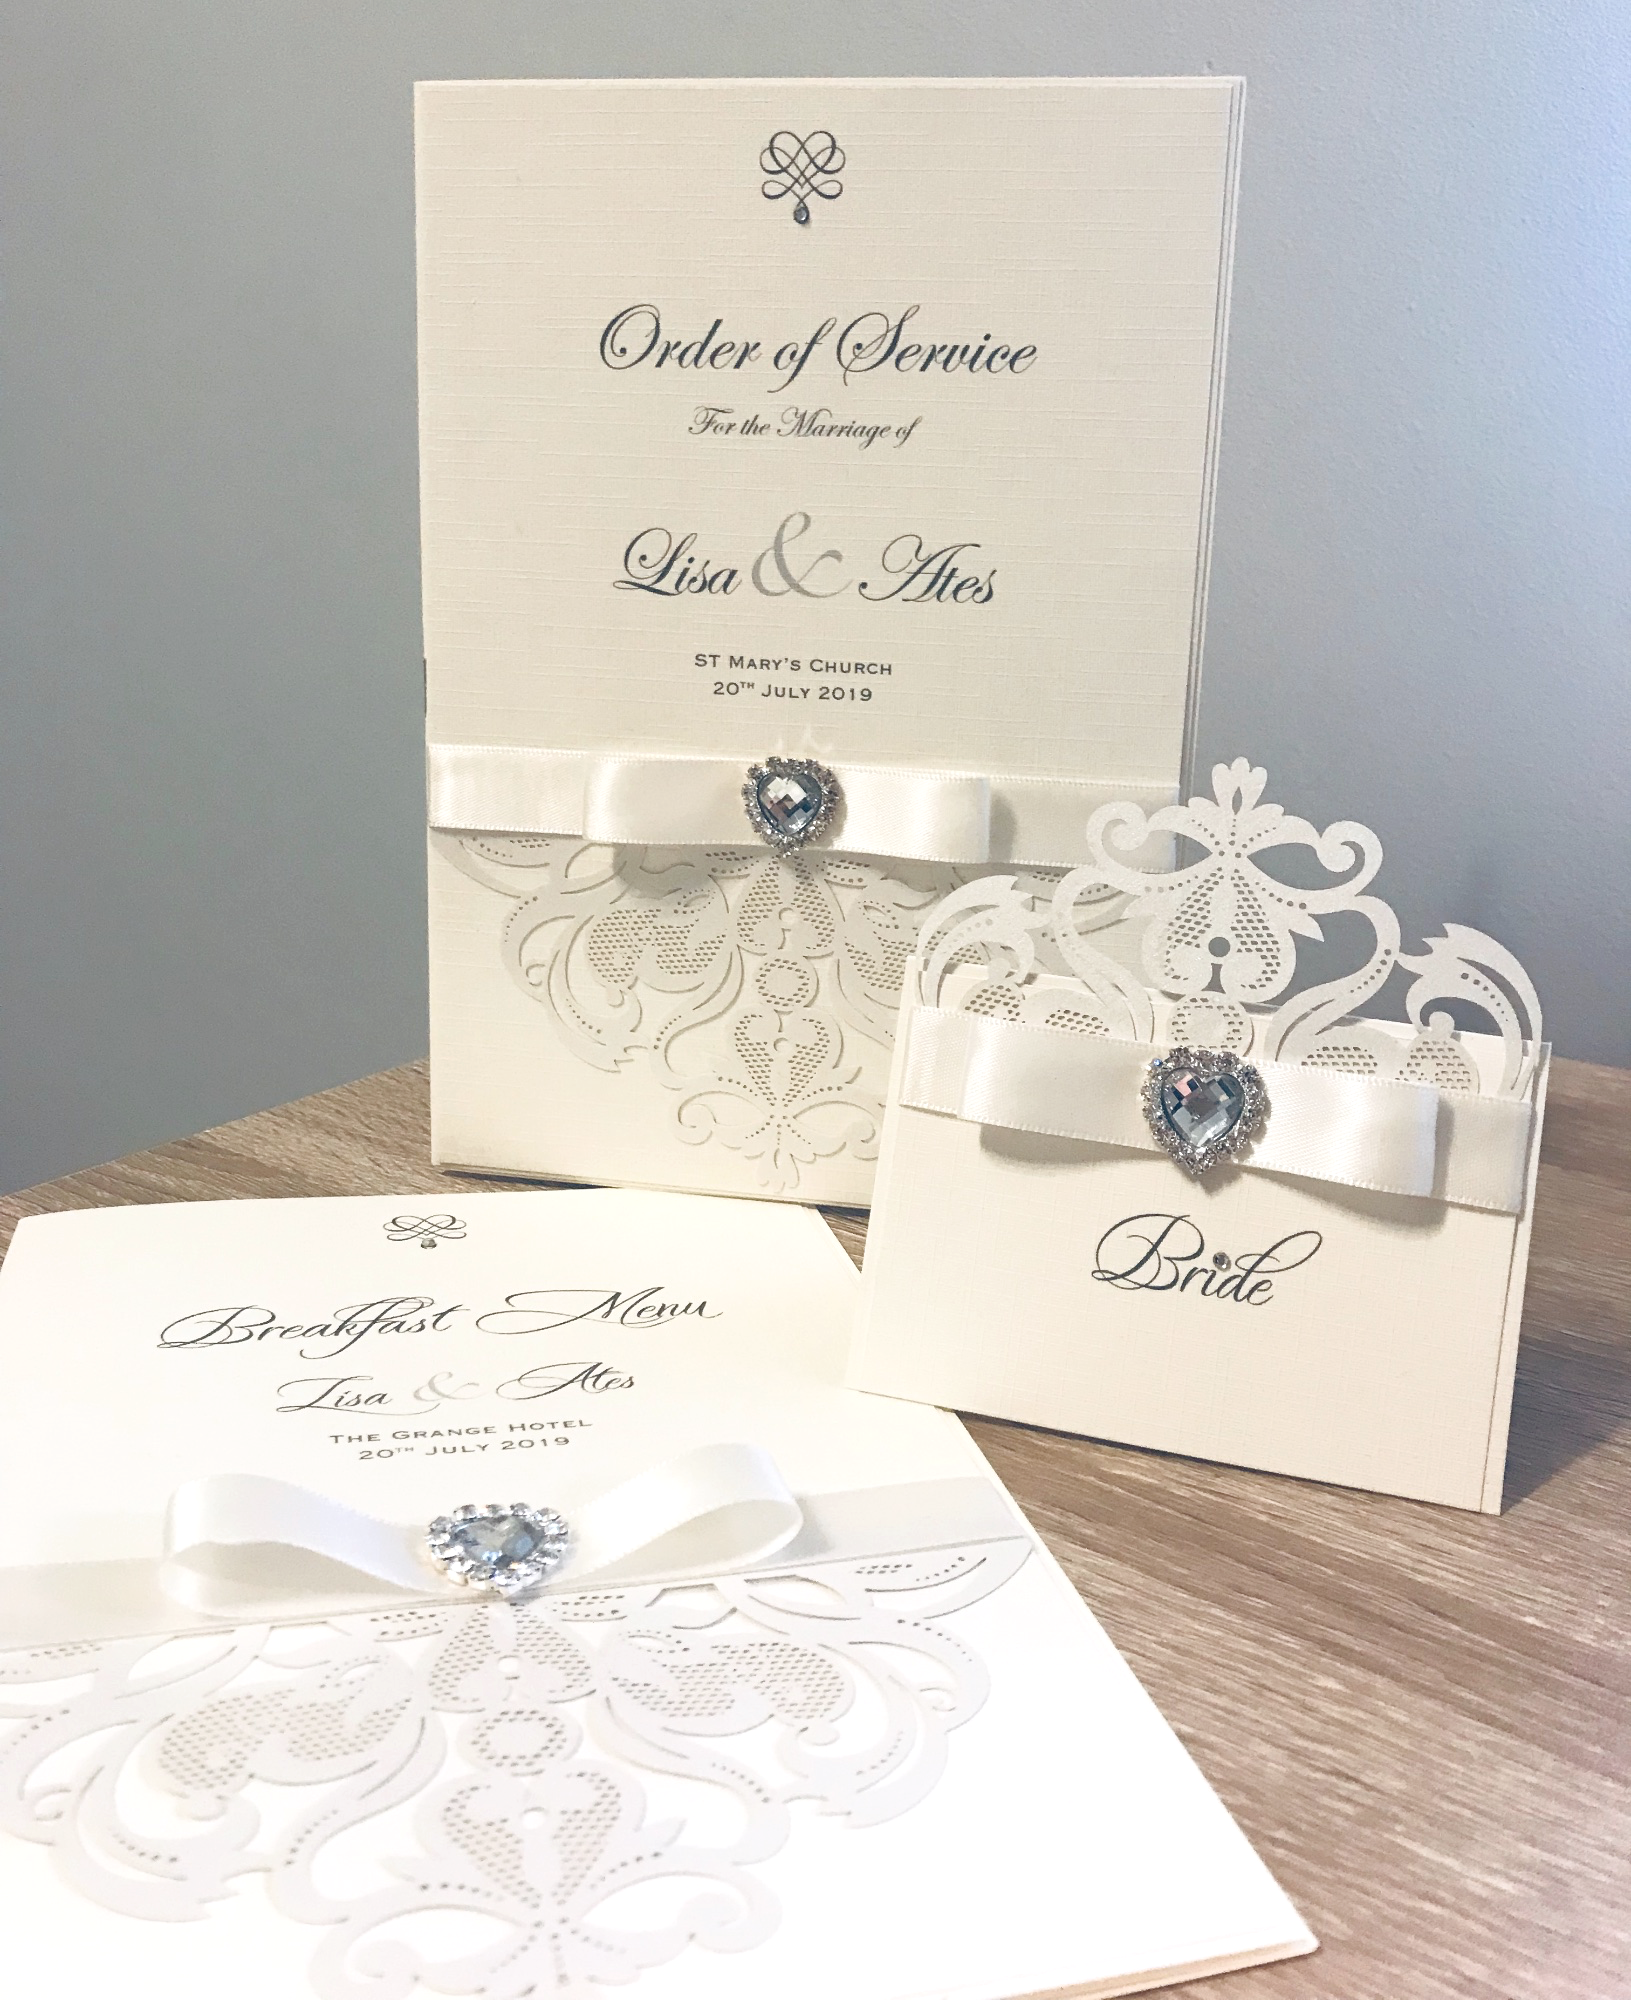 Order of service Mass Booklets for weddings